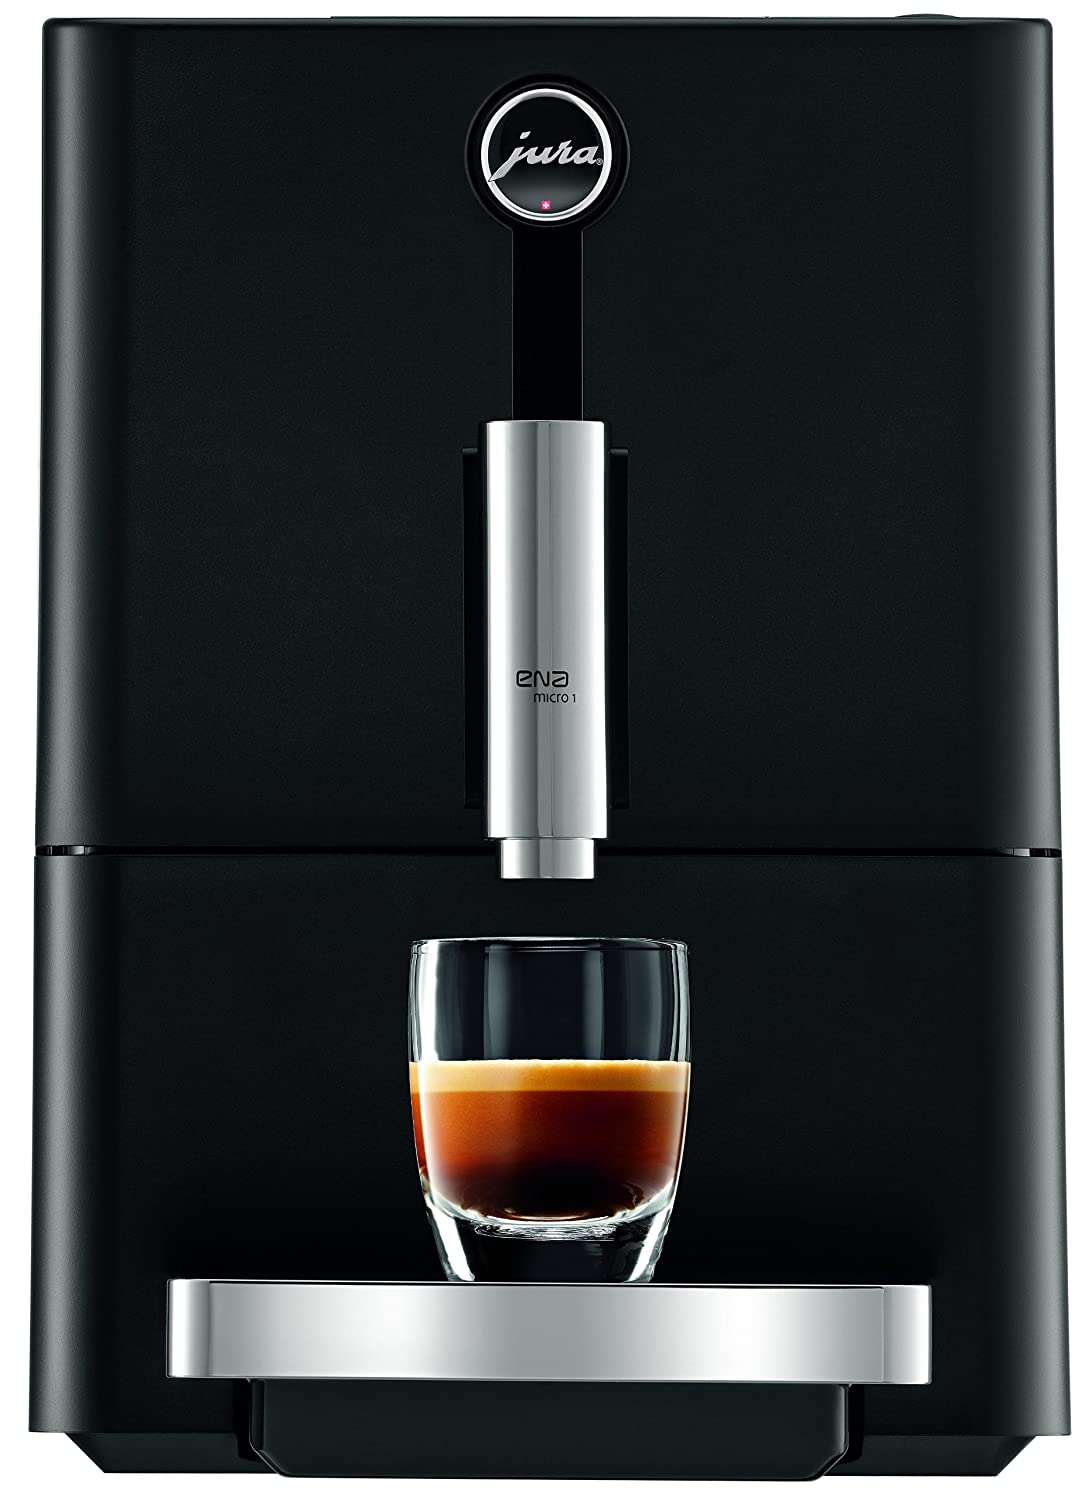 Top 10 Best Espresso Machines under $1000 (2019 Reviews & Buyer's Guide) 8